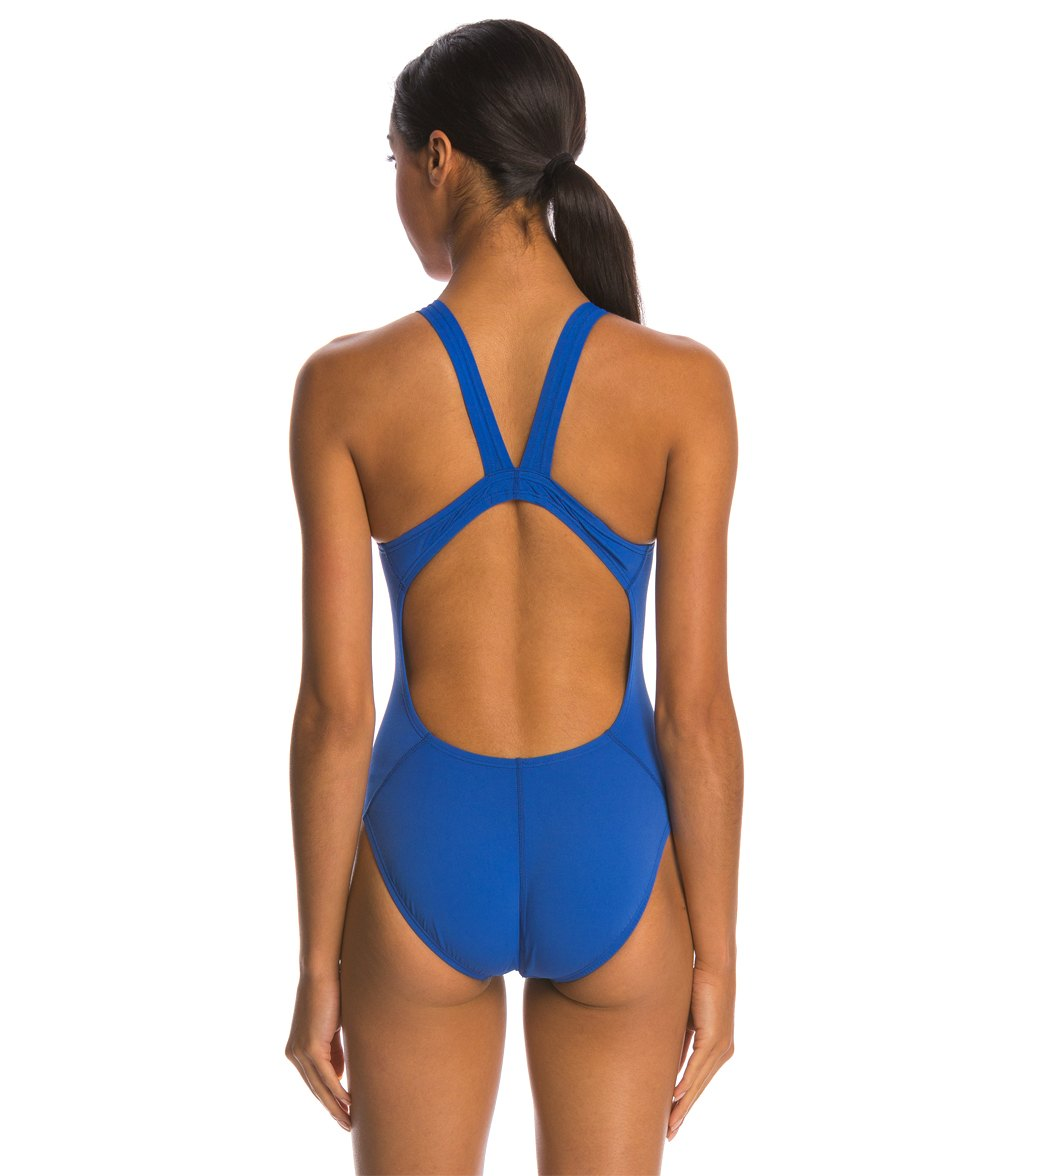 8021fa01c59 Nike Women's Solid Poly Fastback One Piece Tank Swimsuit at ...